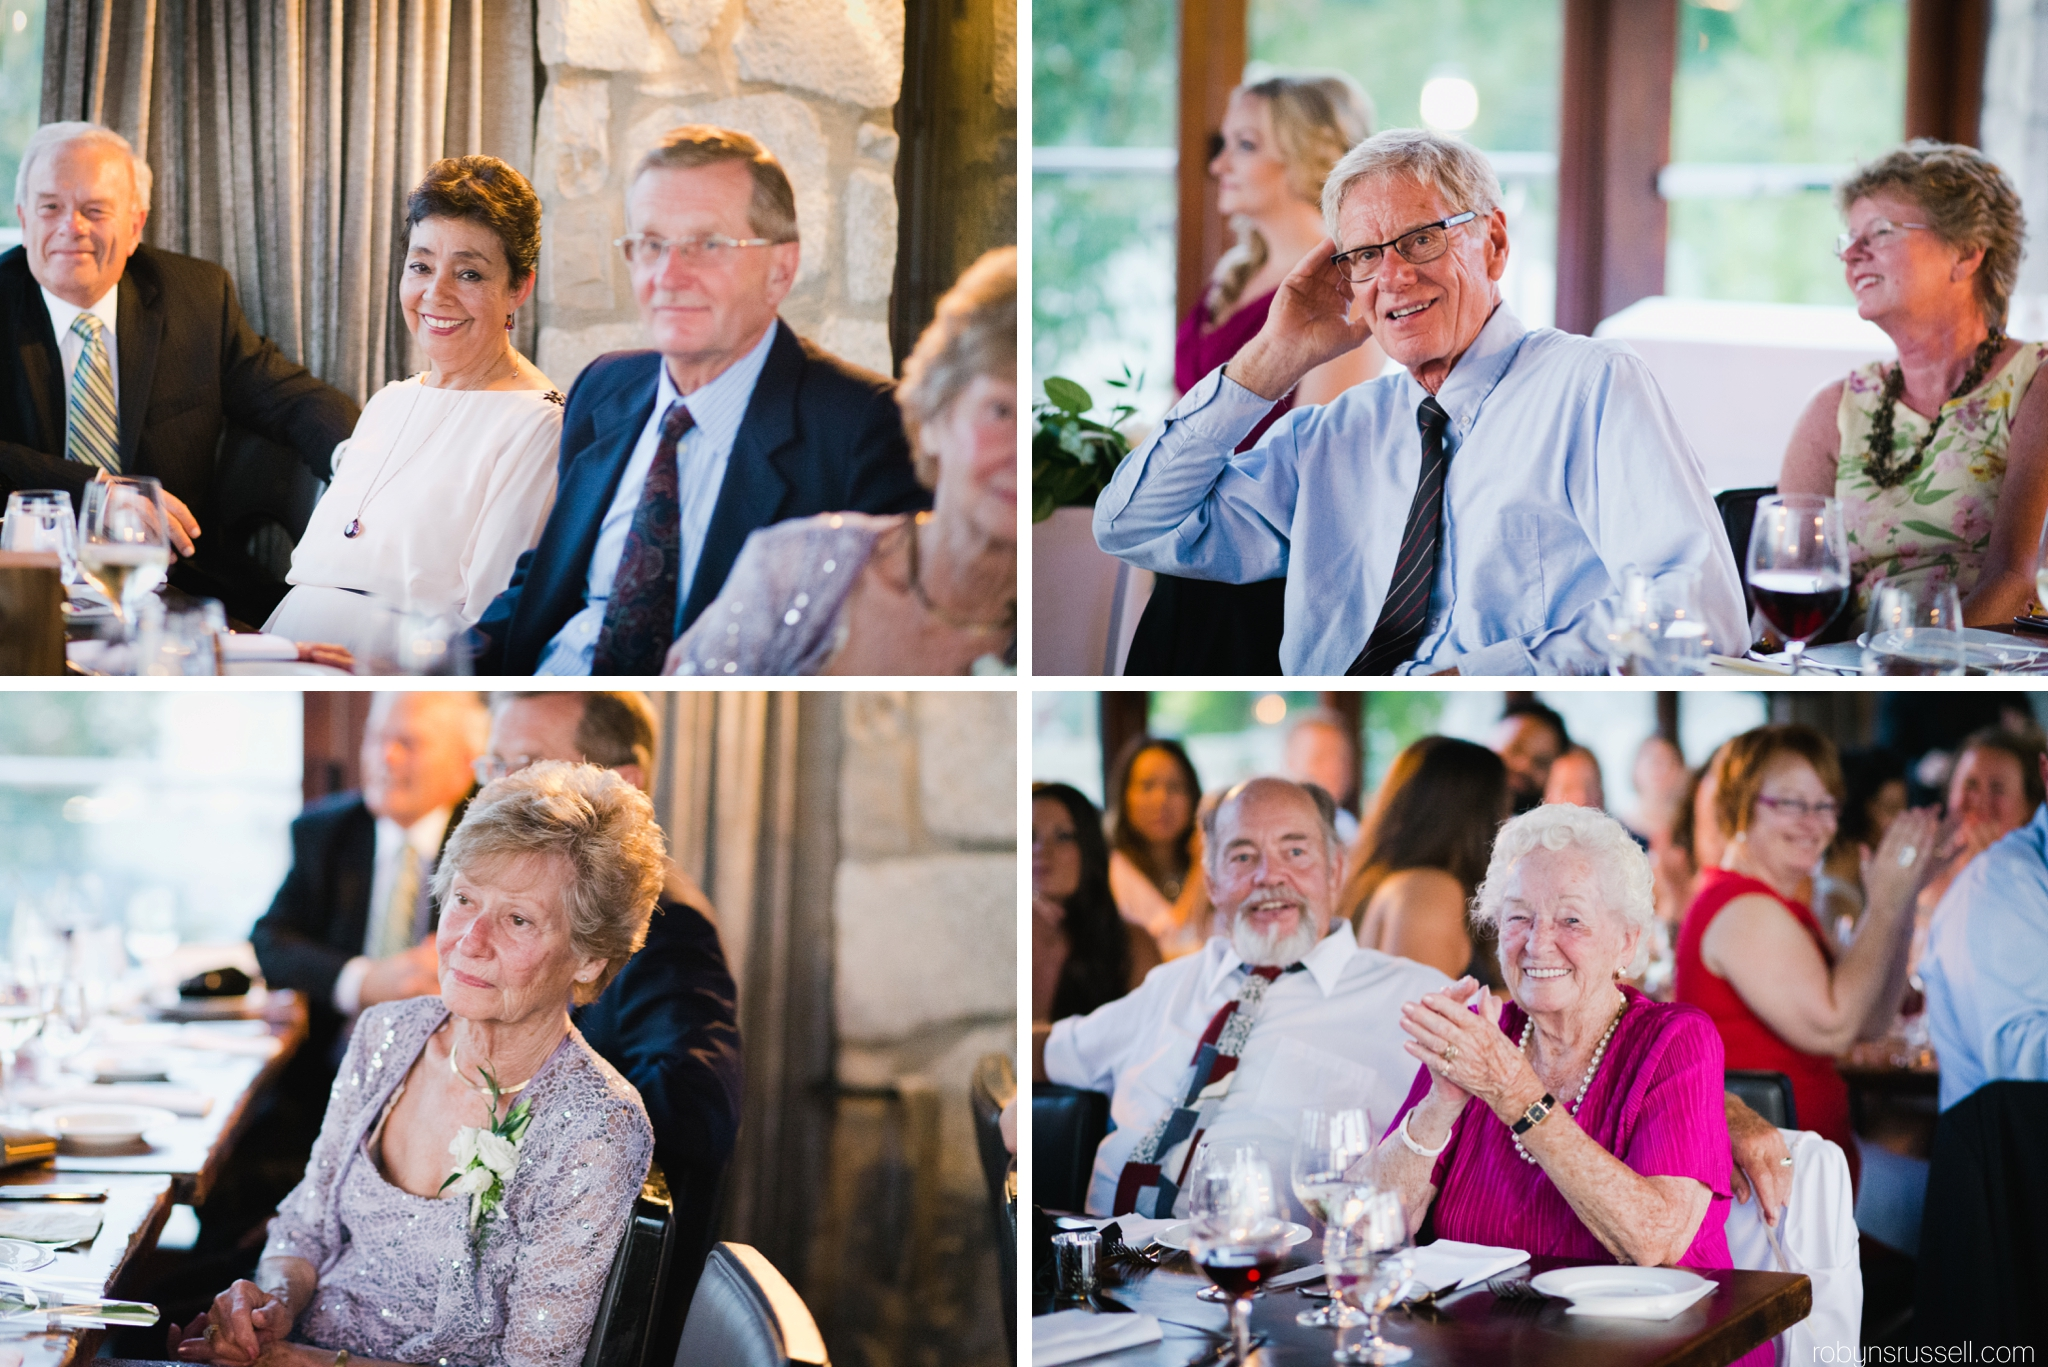 55-guests-during-dinner-reception-at-cambridge-mill.jpg